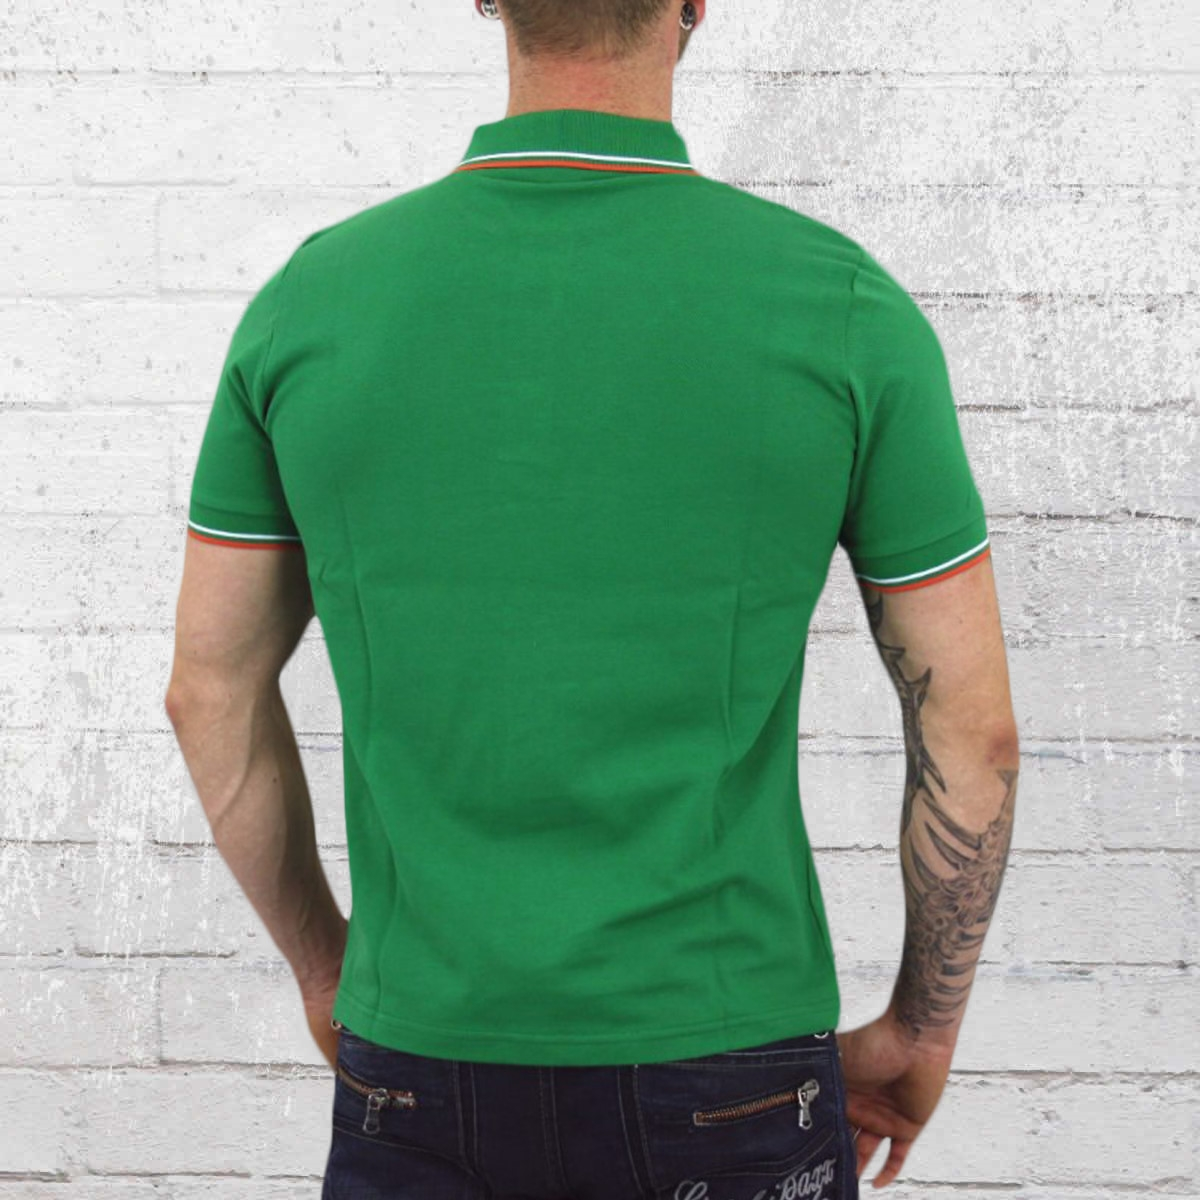 Authentic Black And Neon Green Polo Shirt Af195 Bff1a